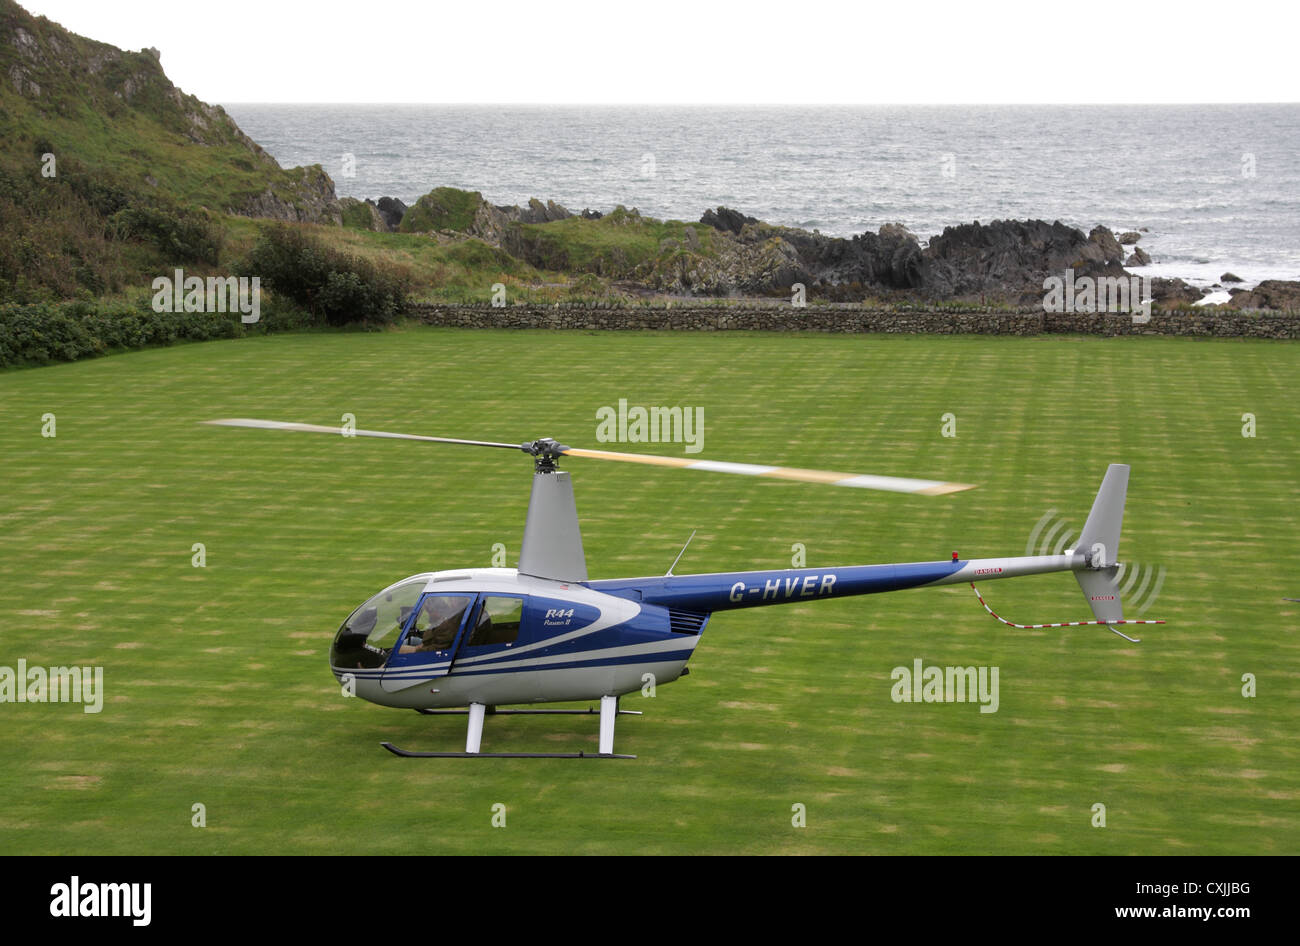 Guests arrive by private helicopter at Knockinaam lodge hotel, near Portpatrick, Dumfries and Galloway, Scotland, - Stock Image